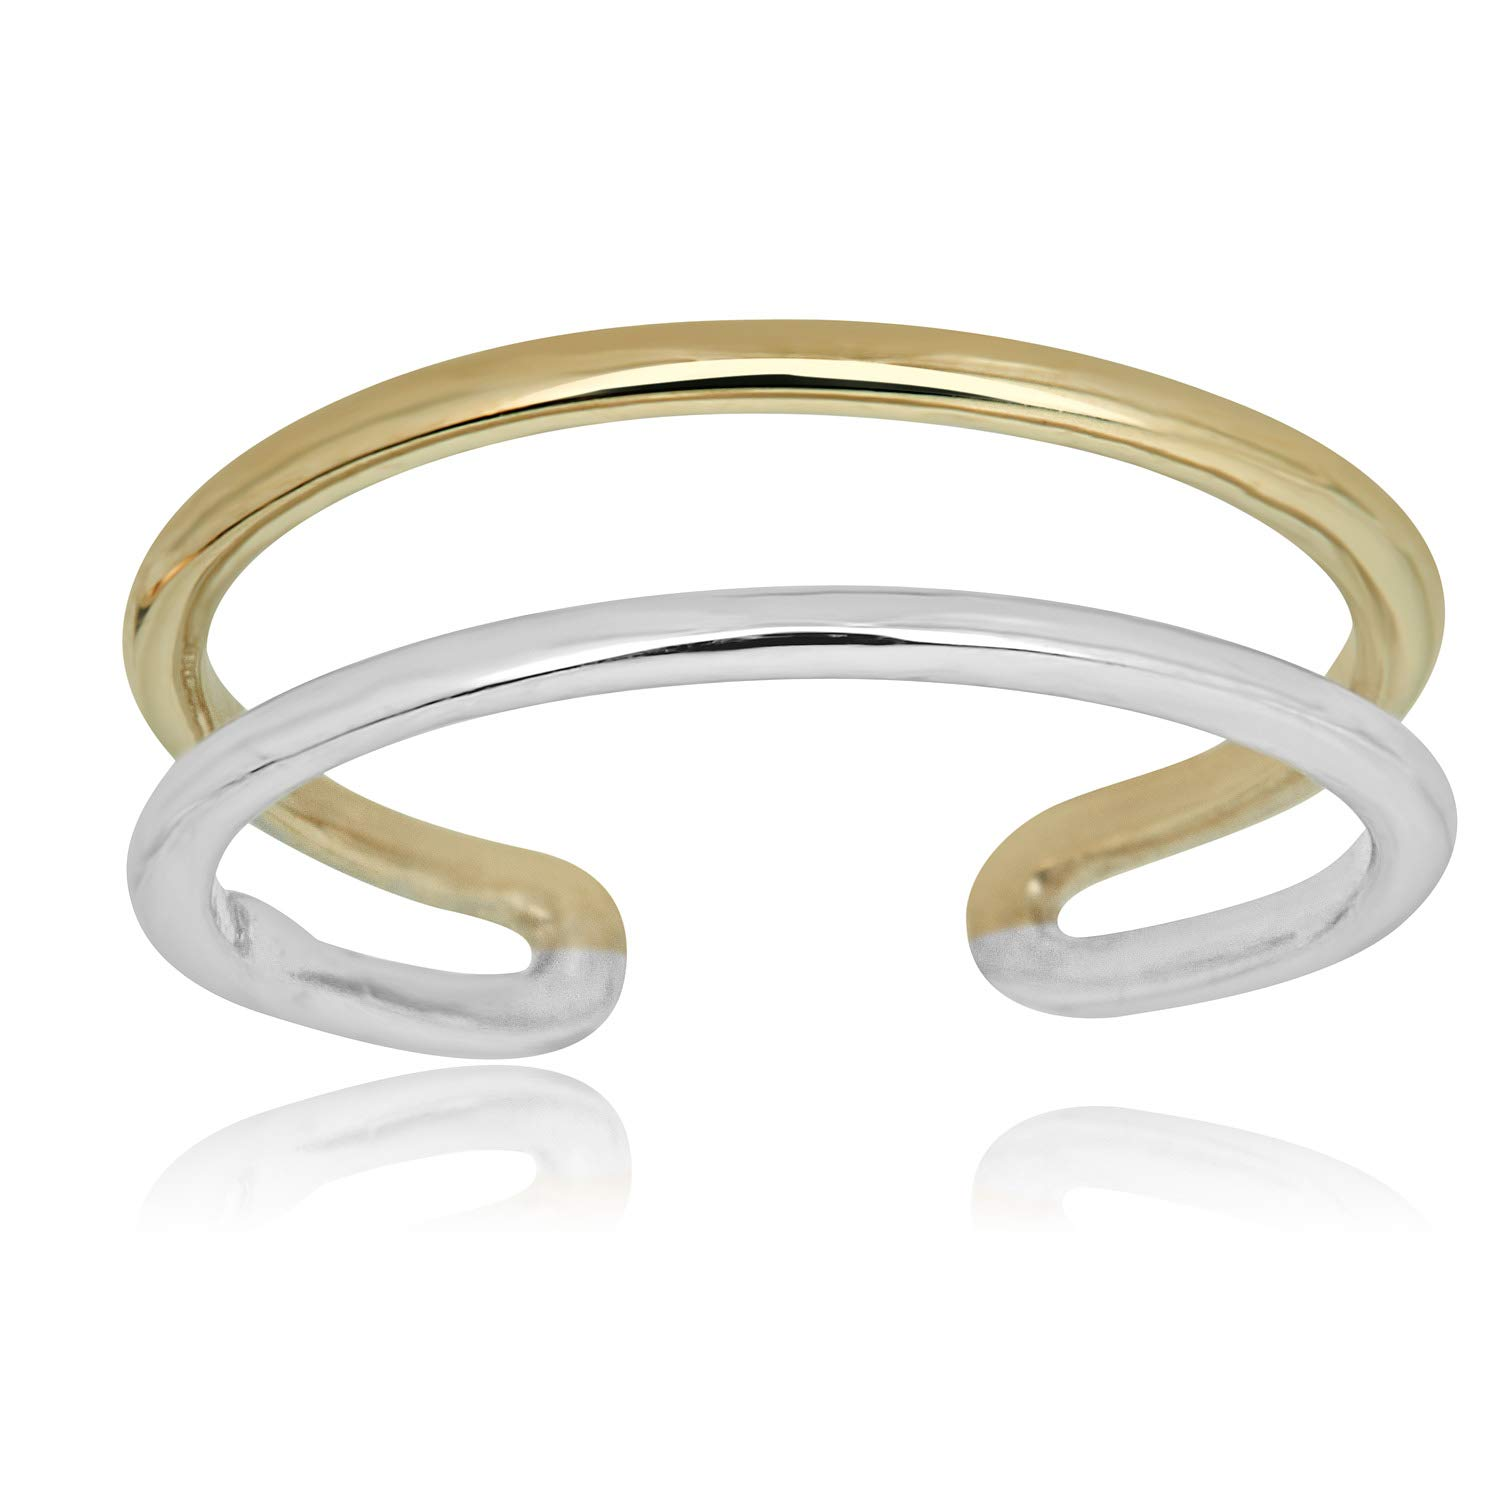 AVORA 10K Gold Two-Tone Two Row Minimalist Adjustable Toe Ring